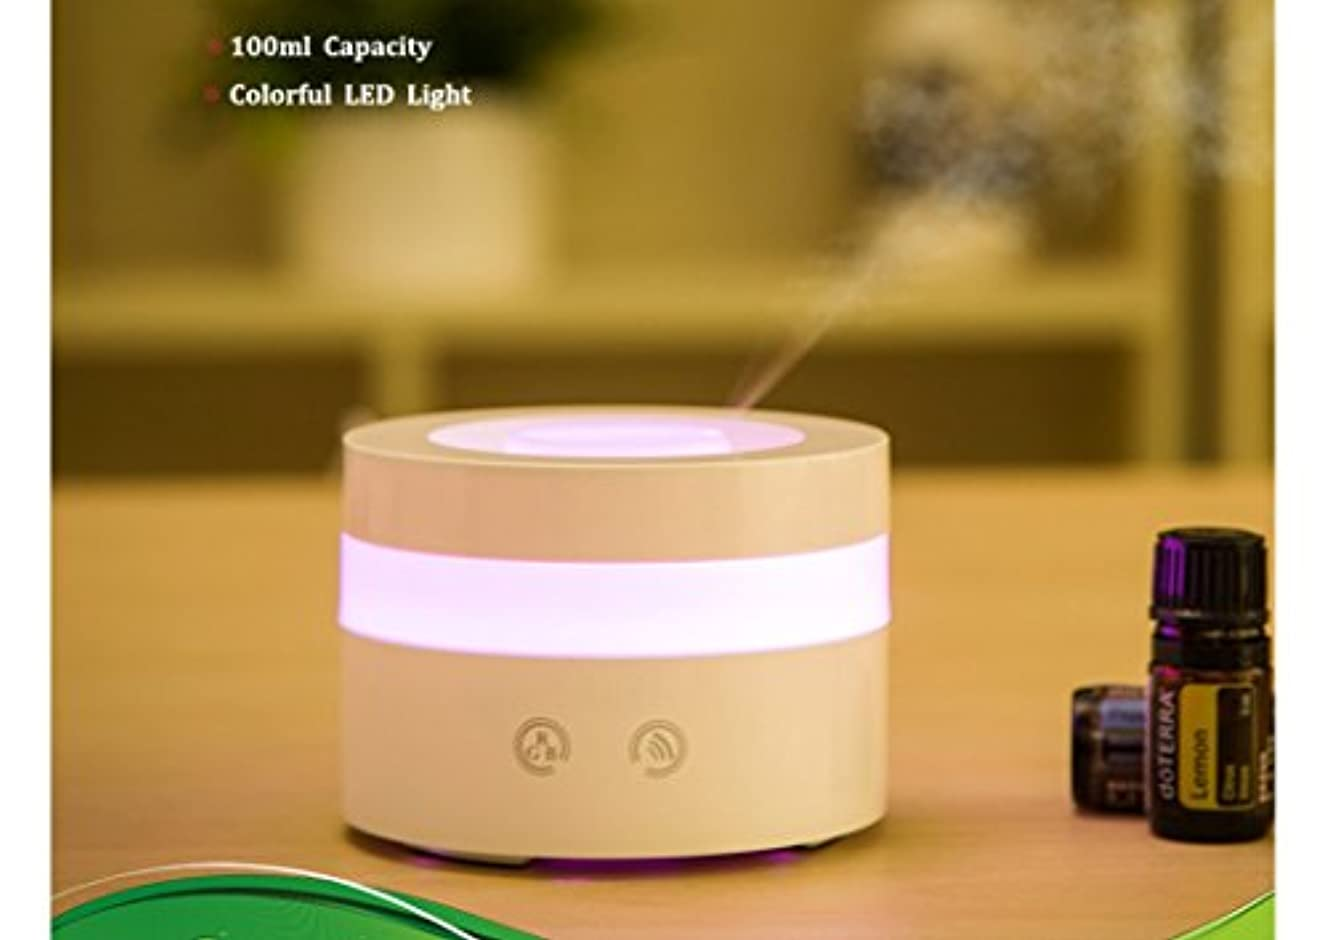 密度国際免除するActpe Portable Travel-size USB 100ml Aroma Essential Oil Diffuser Ultrasonic Air Humidifier Ultrasonic Cool Mist...